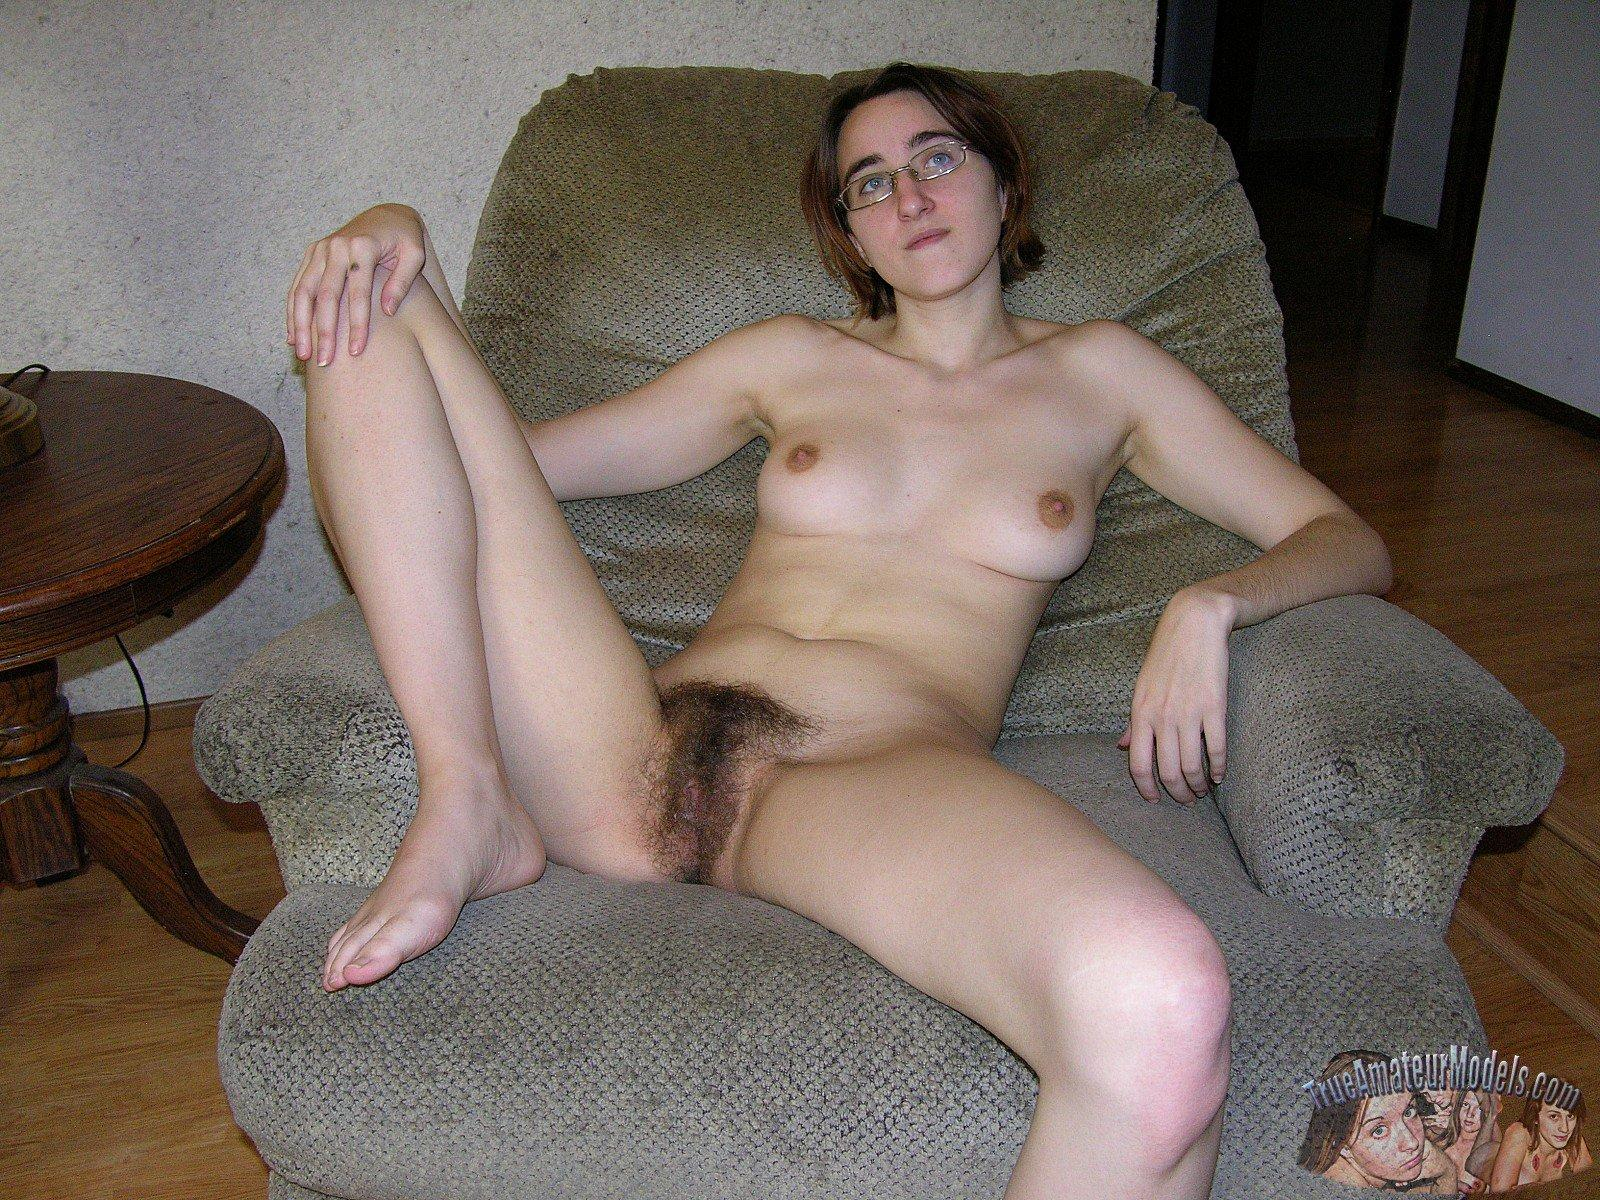 Remarkable, very nerdy girl smoking in the nude